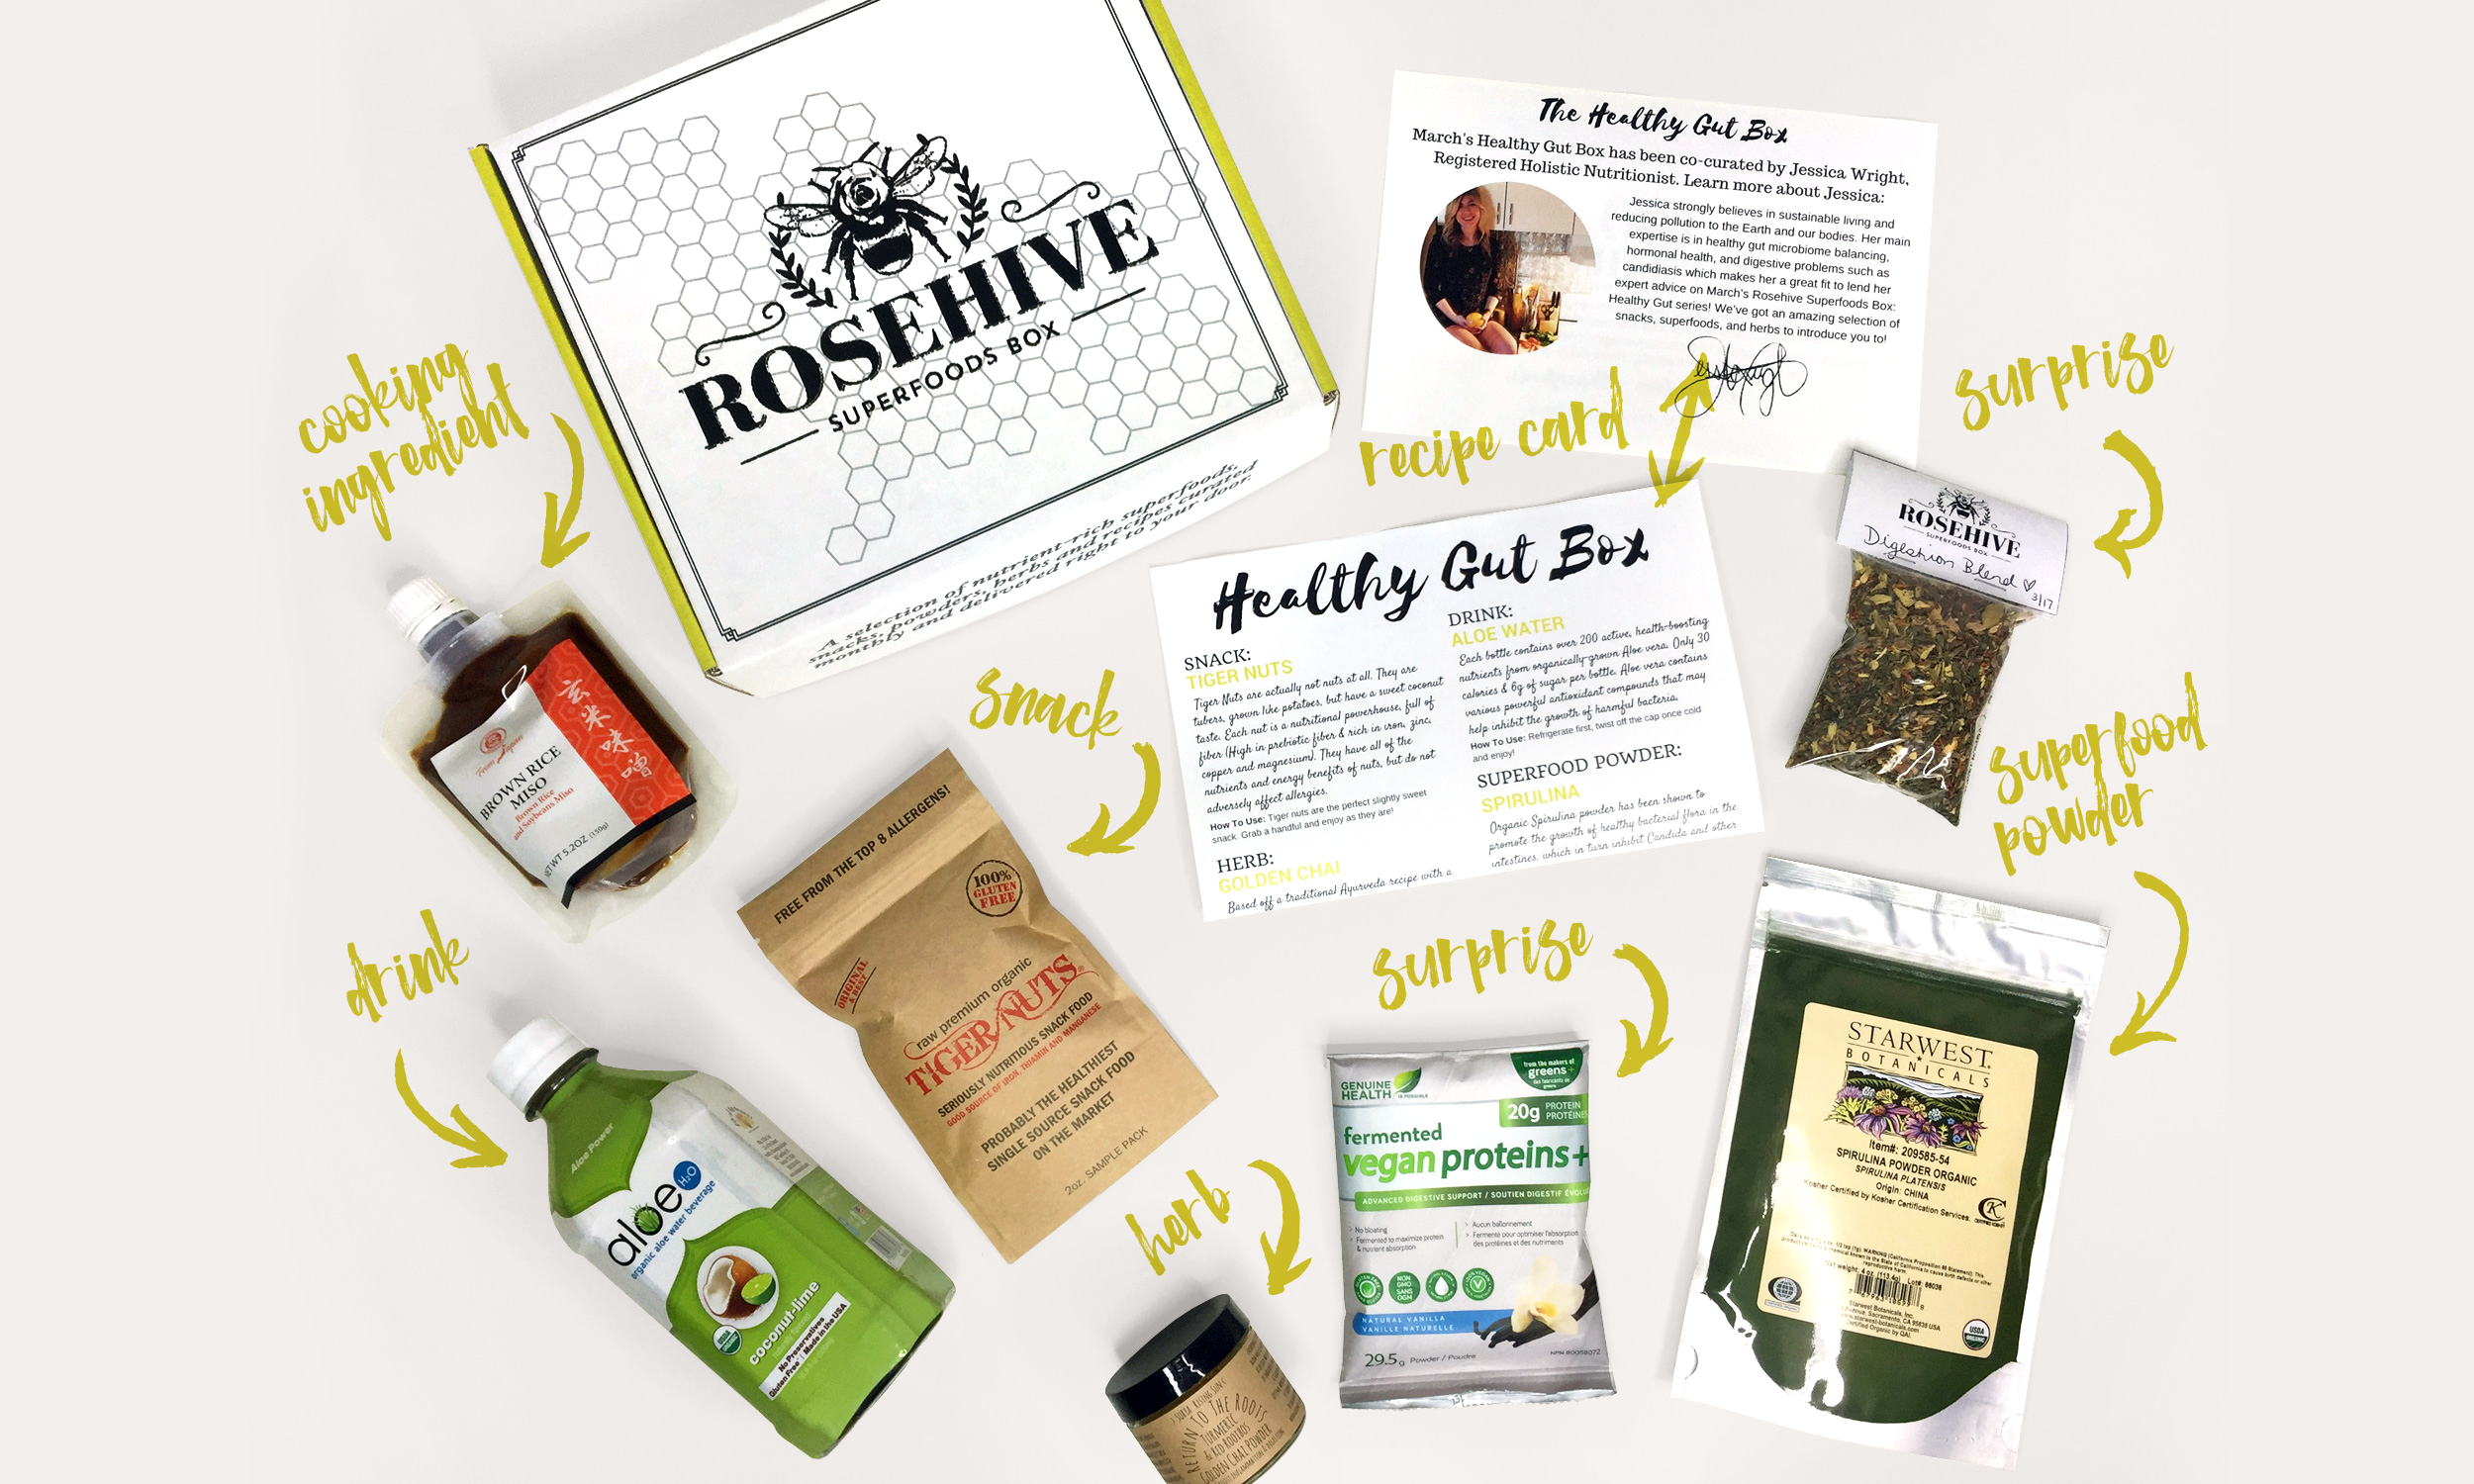 rosehive superfoods box for elevating your health